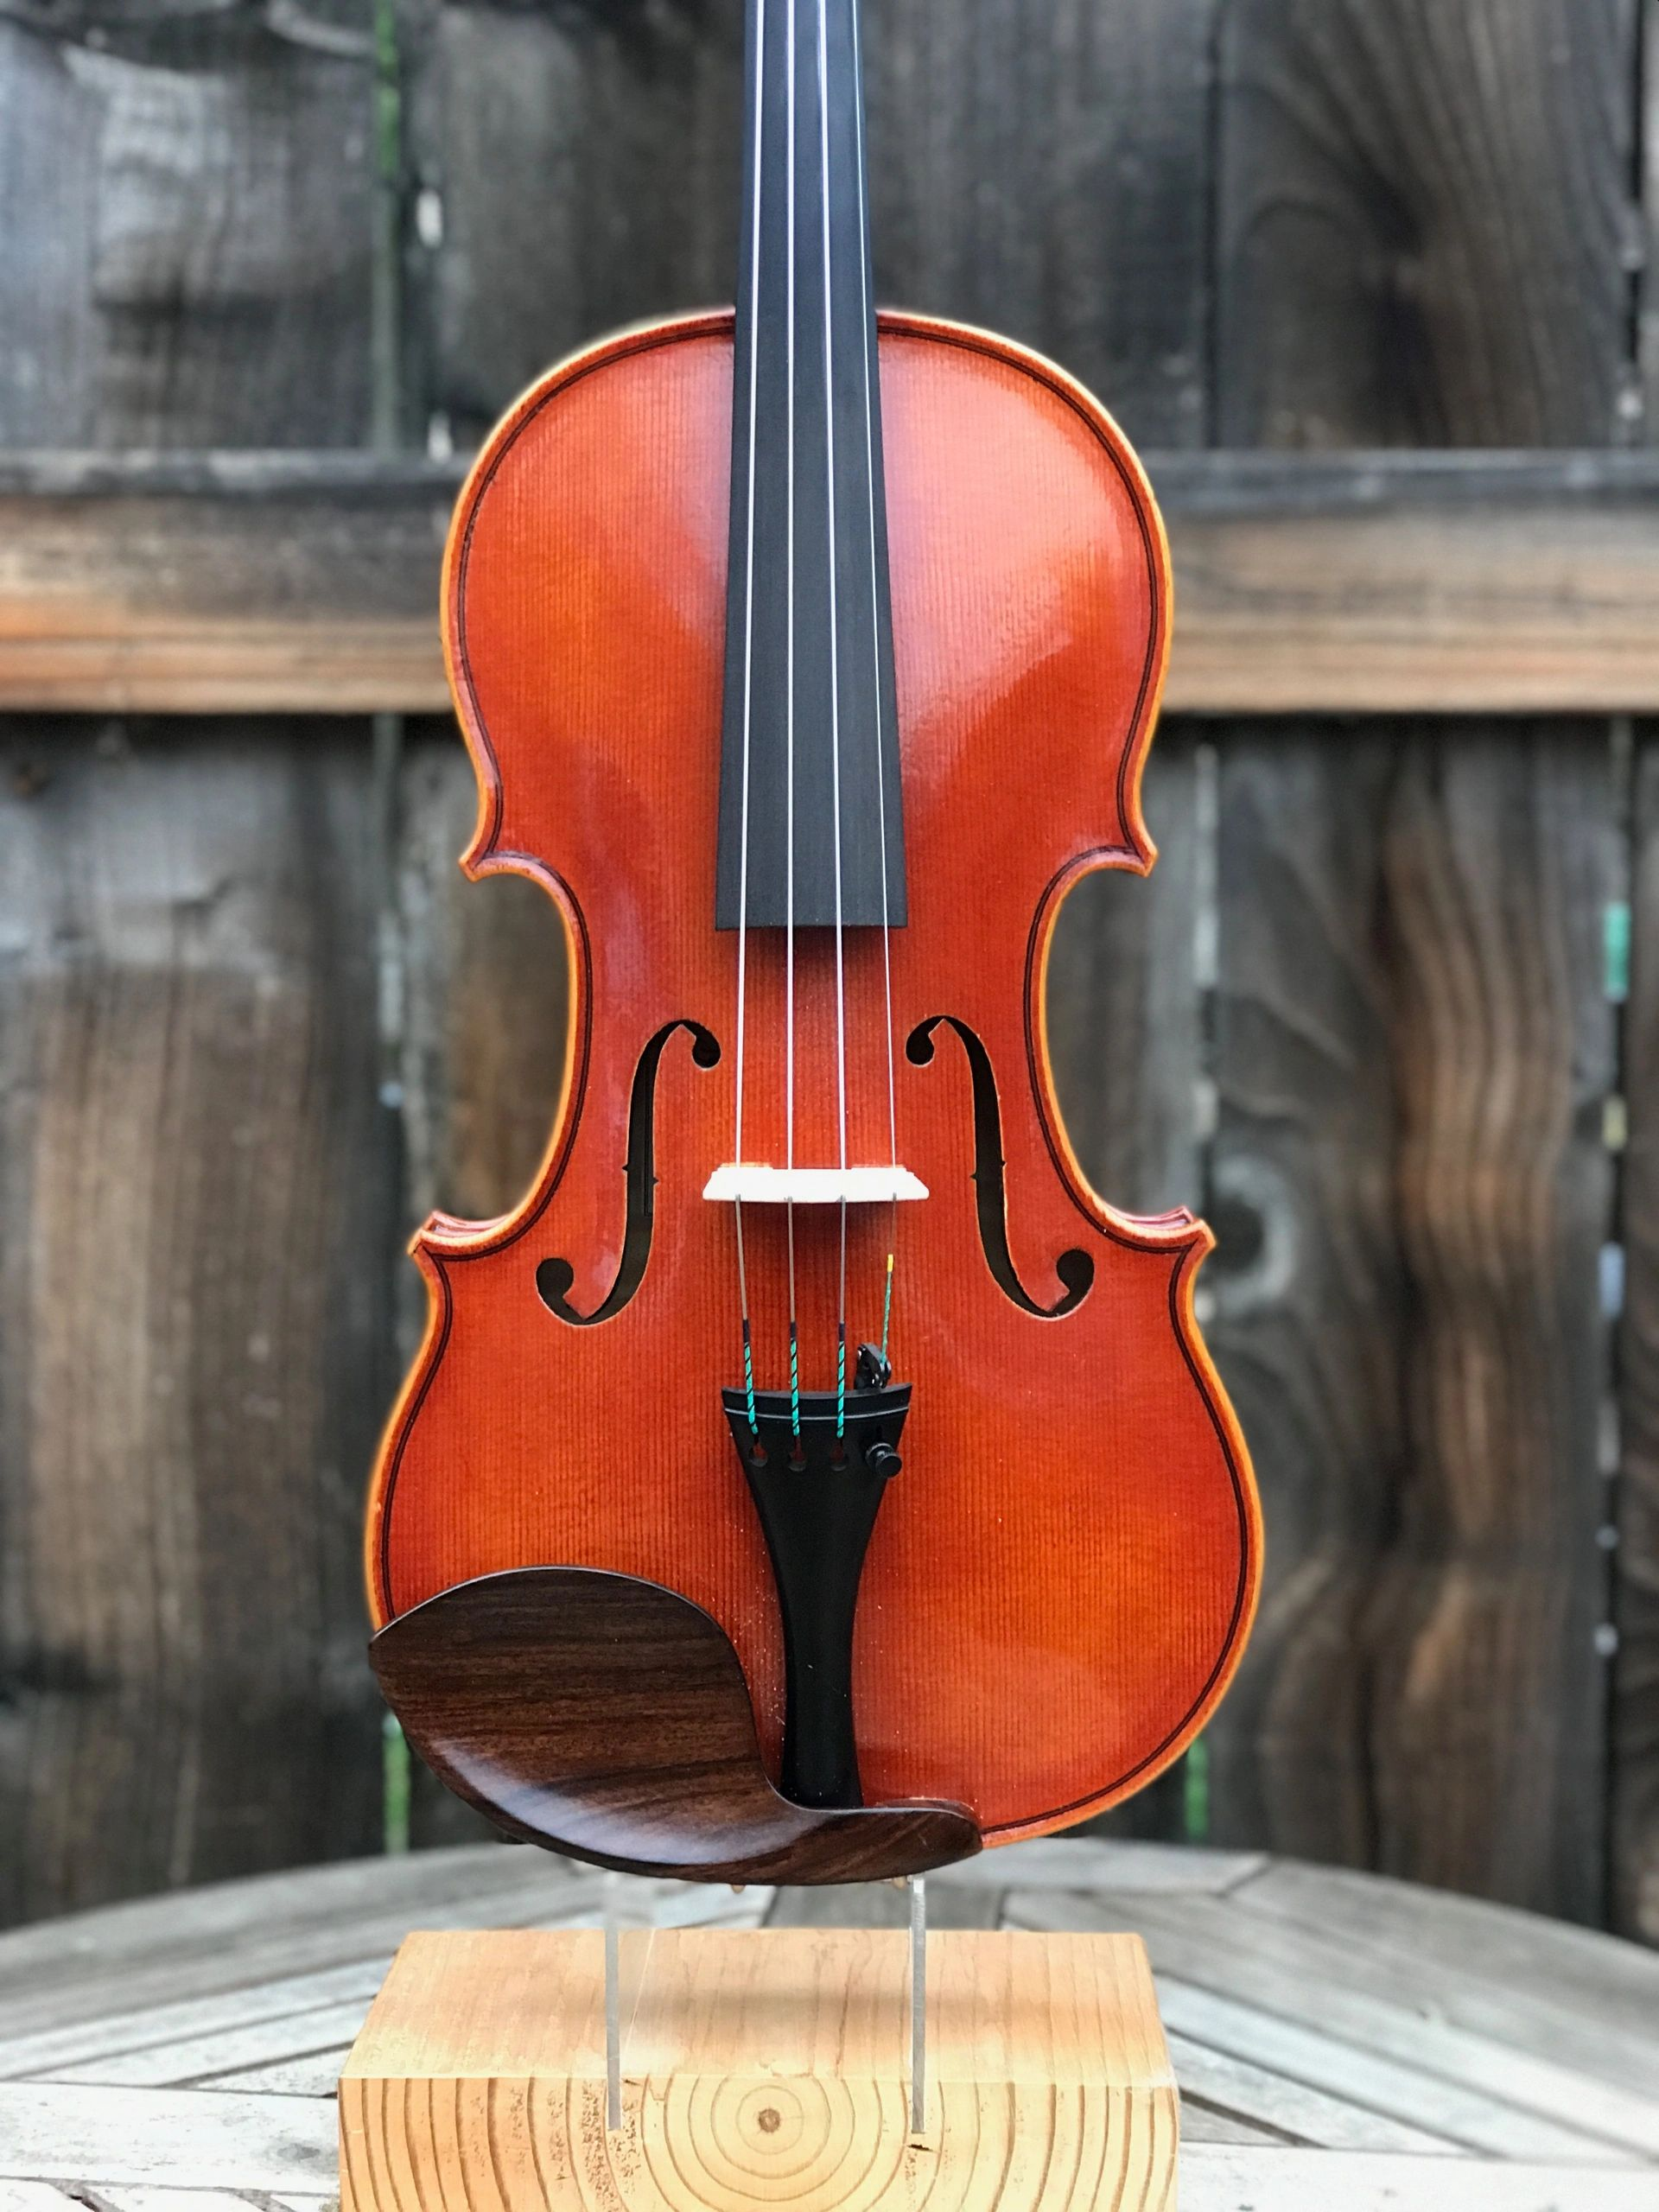 Latest Violin by John Hill was completed in early 2019.